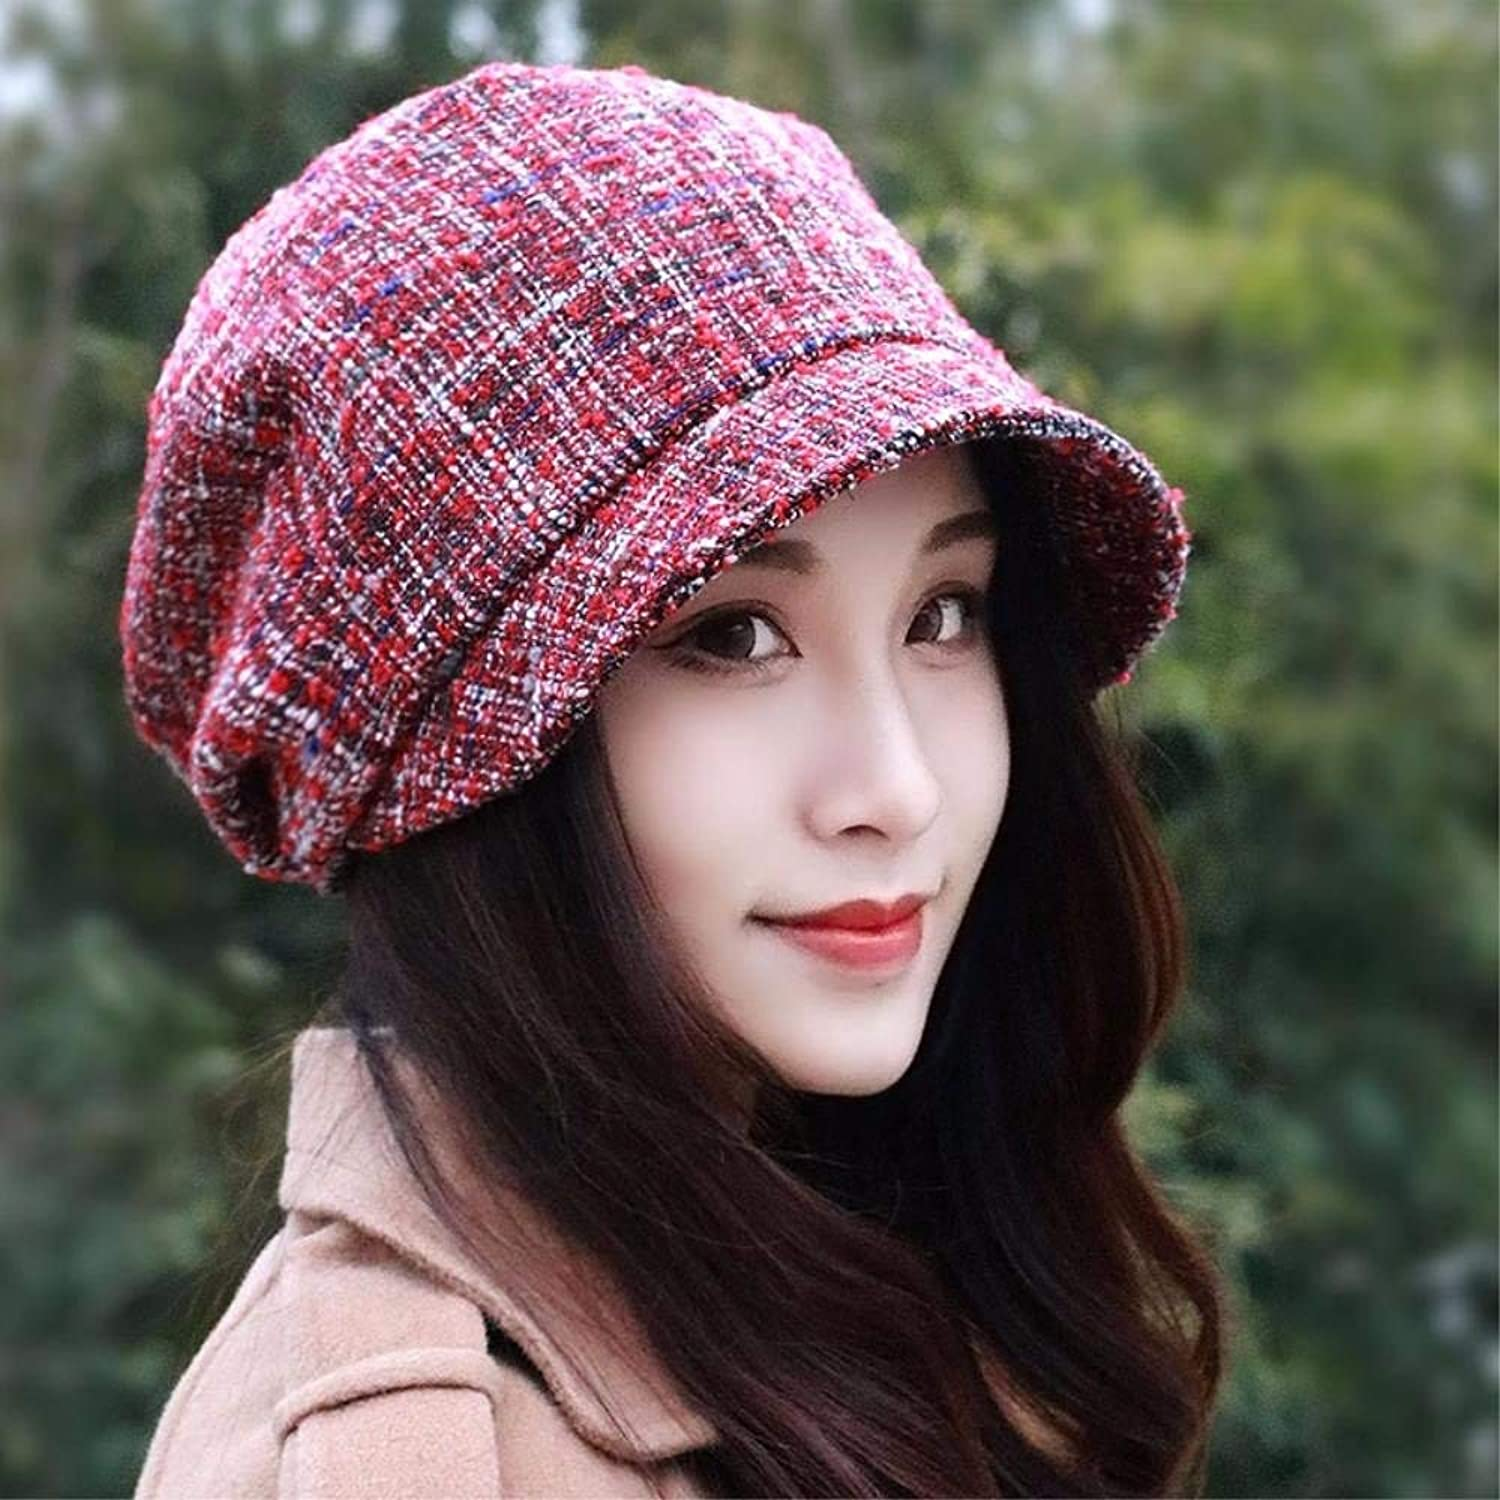 Chuiqingnet Girls fall WINTER HAT beret fashion girl hat octagonal cap English painter cap basin hat painter cap new